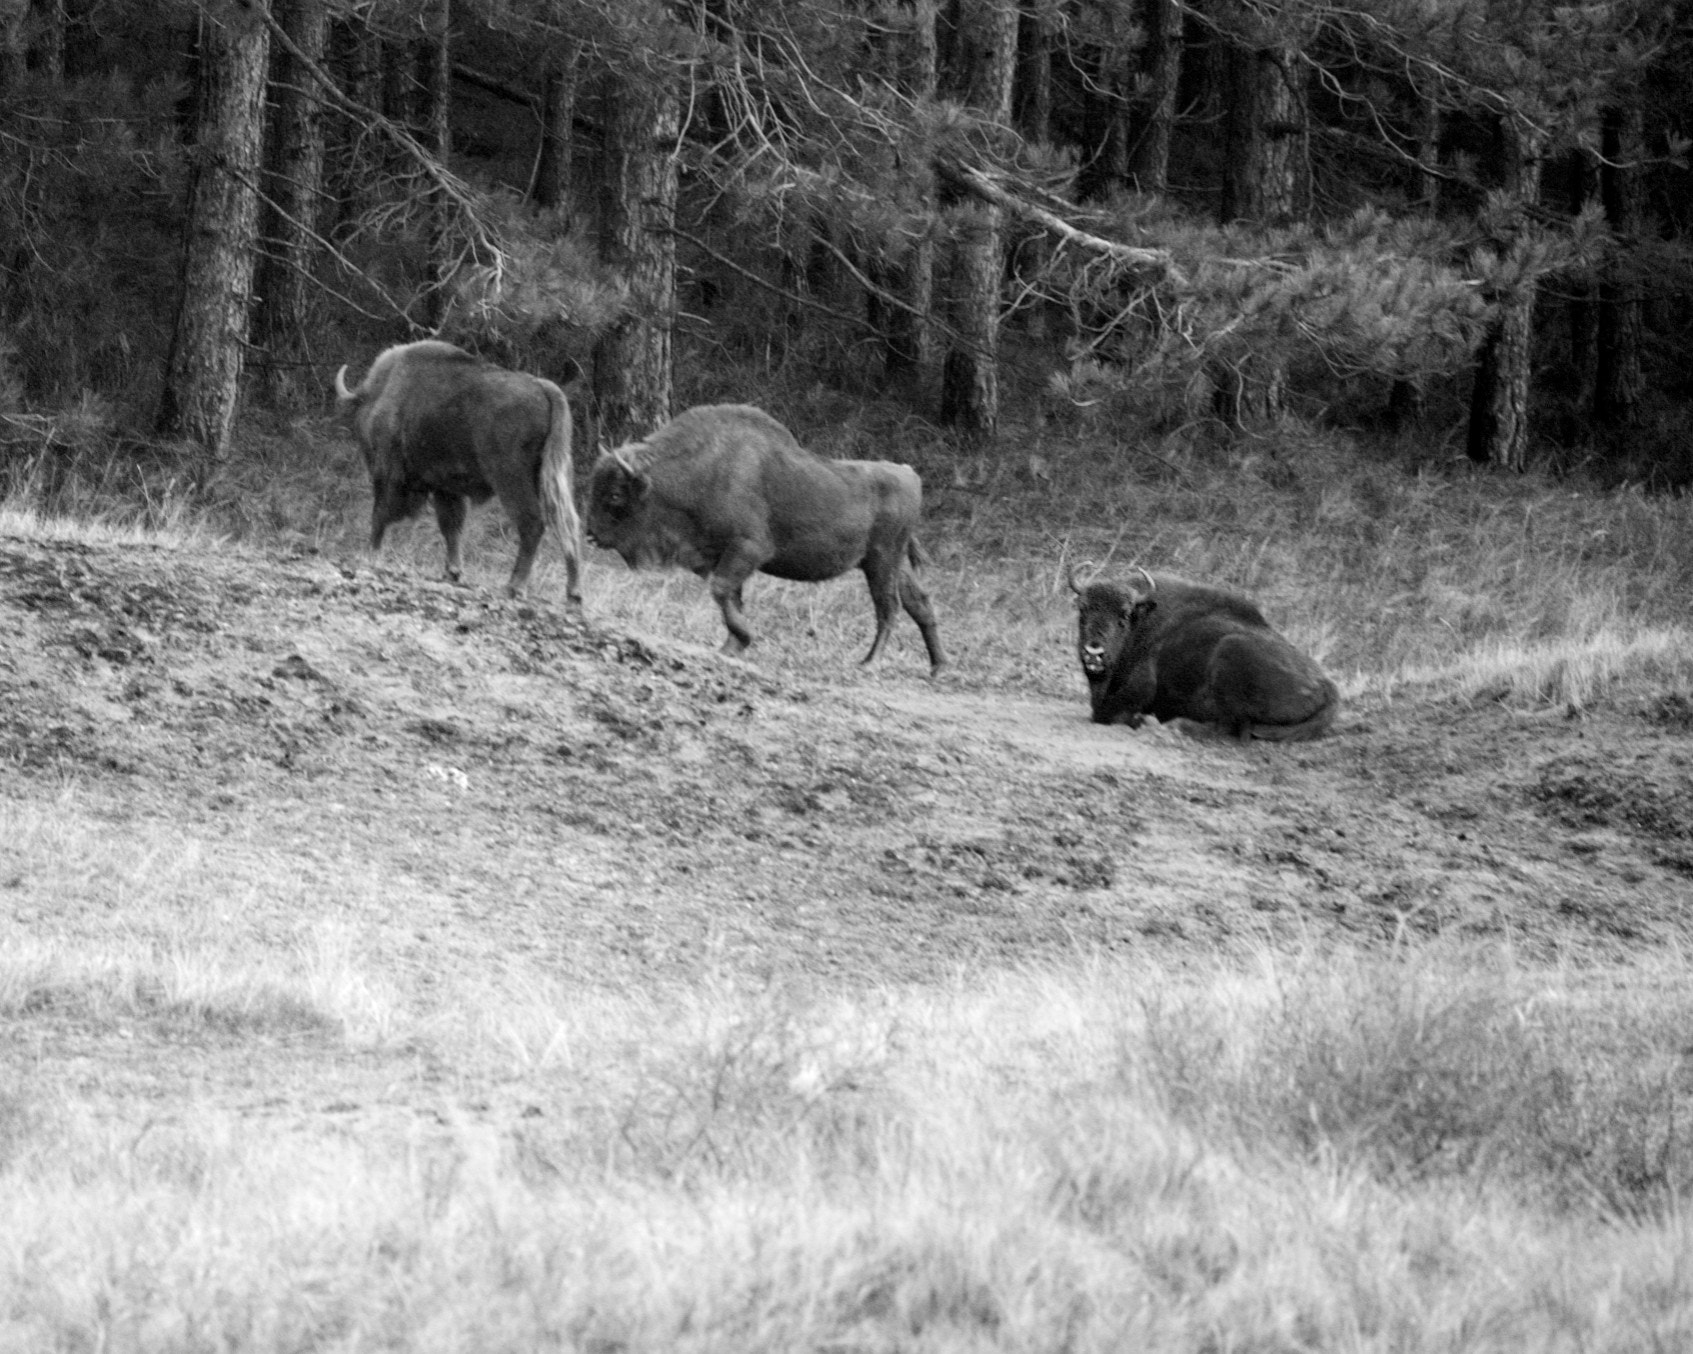 Photograph Wisents in the wild at Kraansvlak by Johan Hoogerbrug on 500px